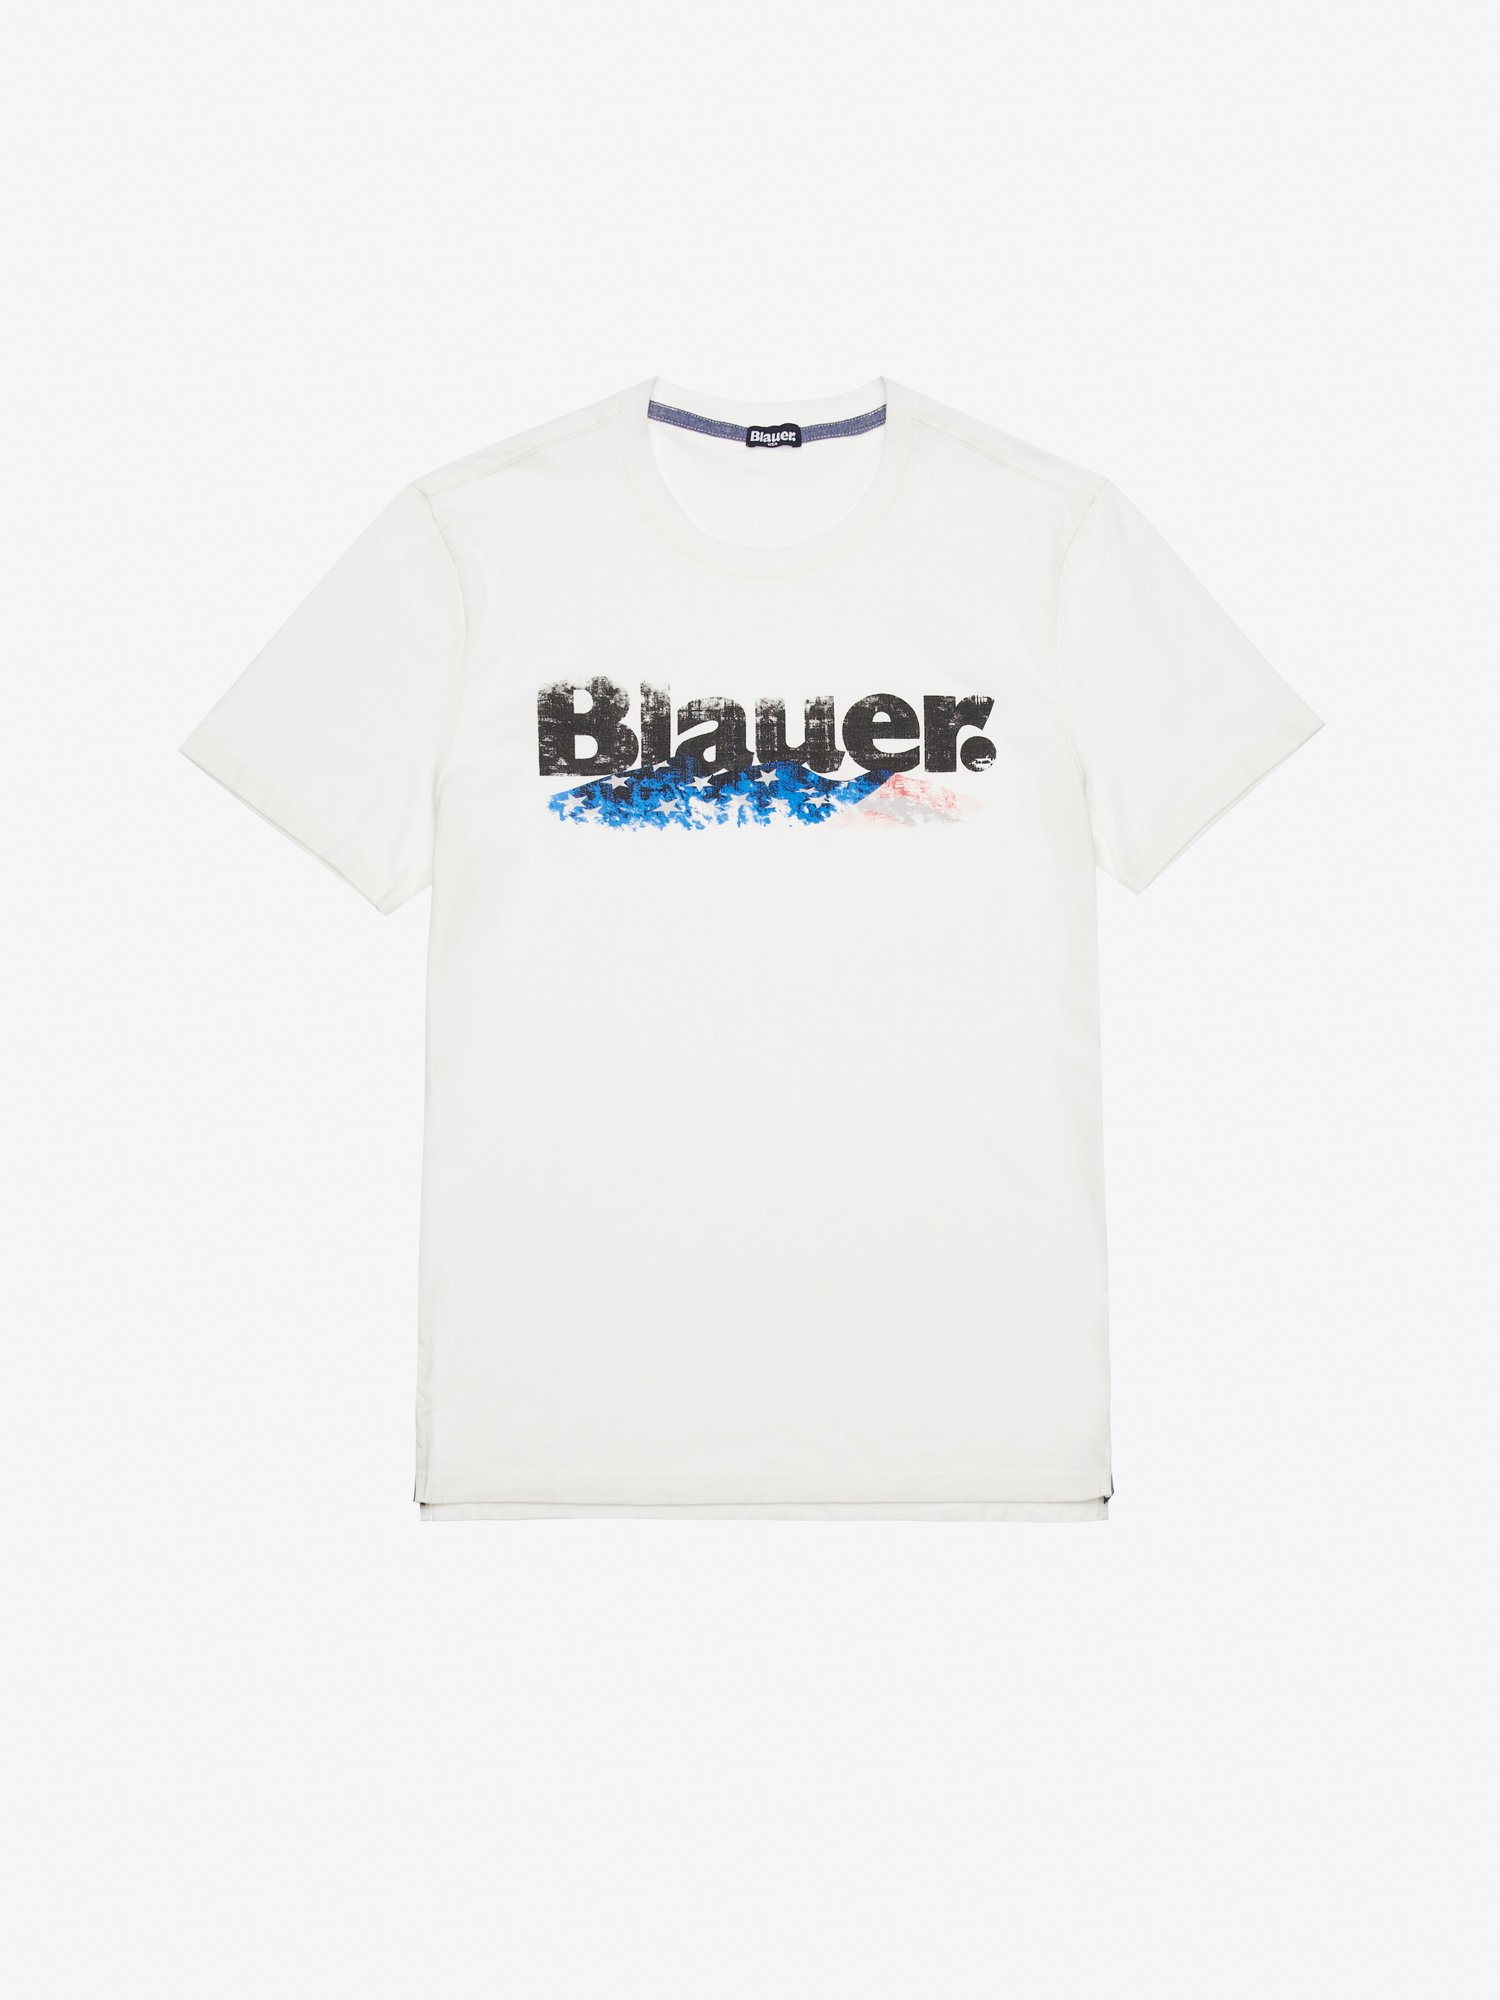 MEN'S GARMENT DYED JERSEY T-SHIRT - Blauer